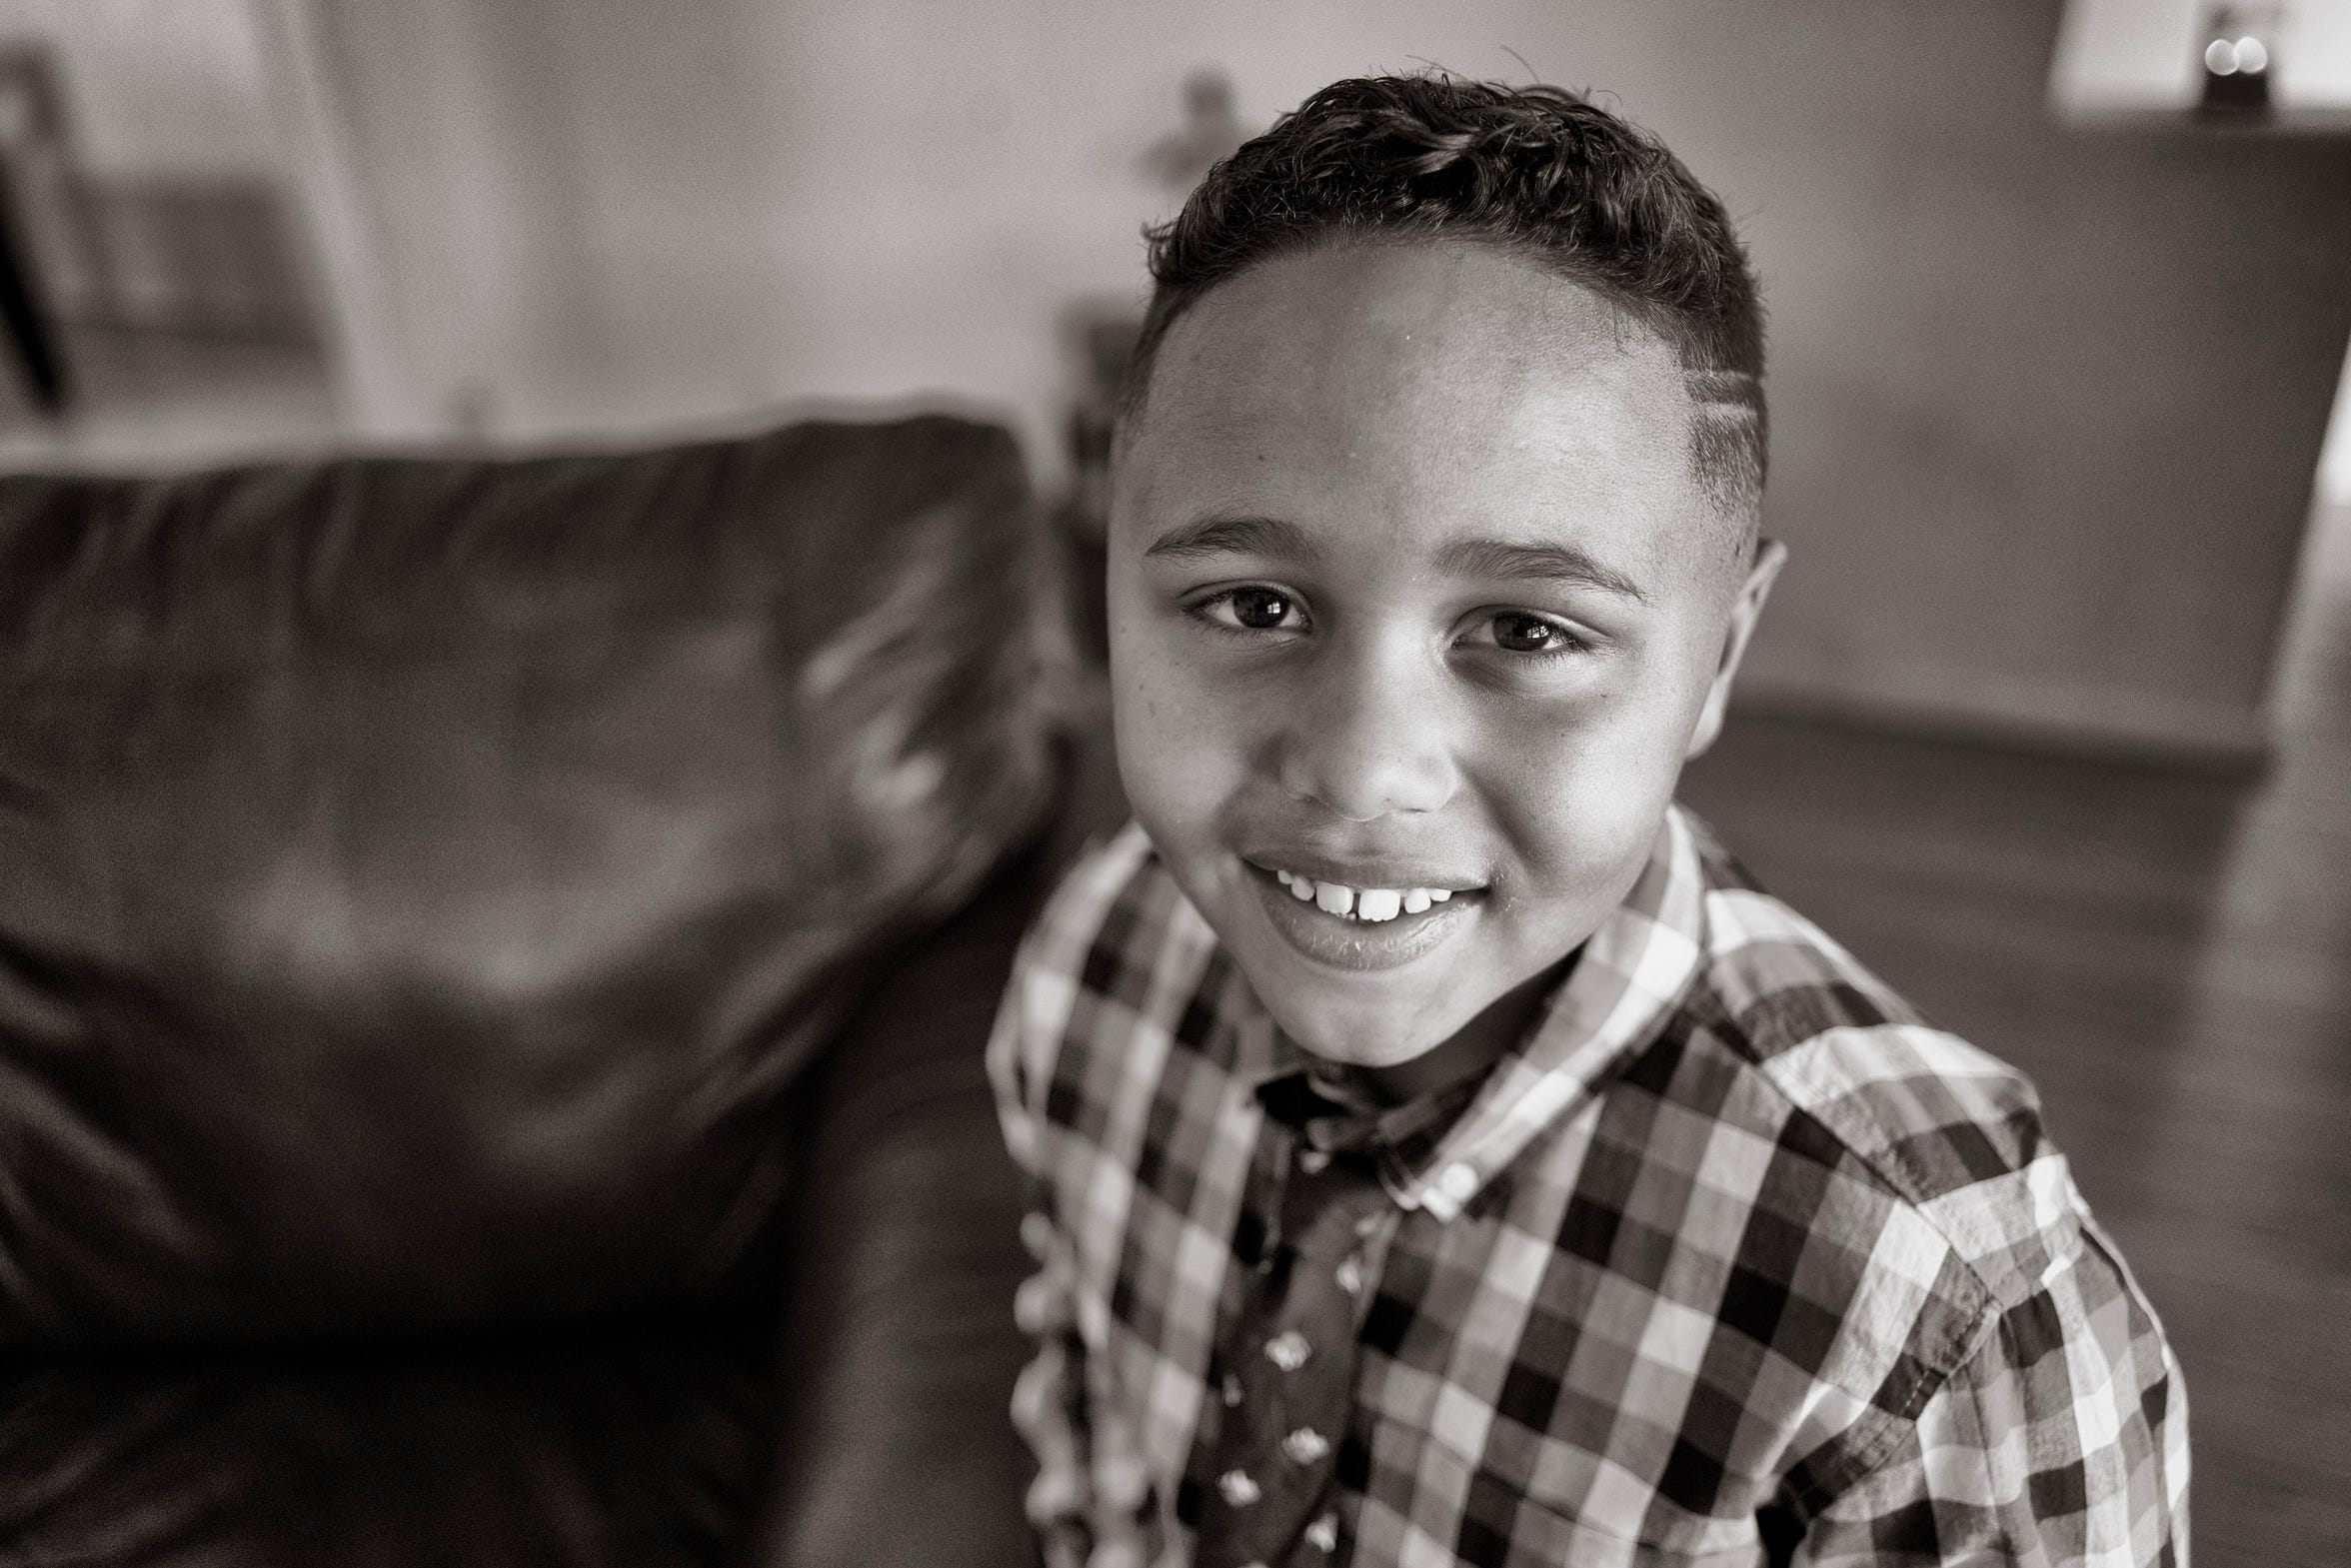 Jamari Nelson, 7, at home in Albuquerque, New Mexico.